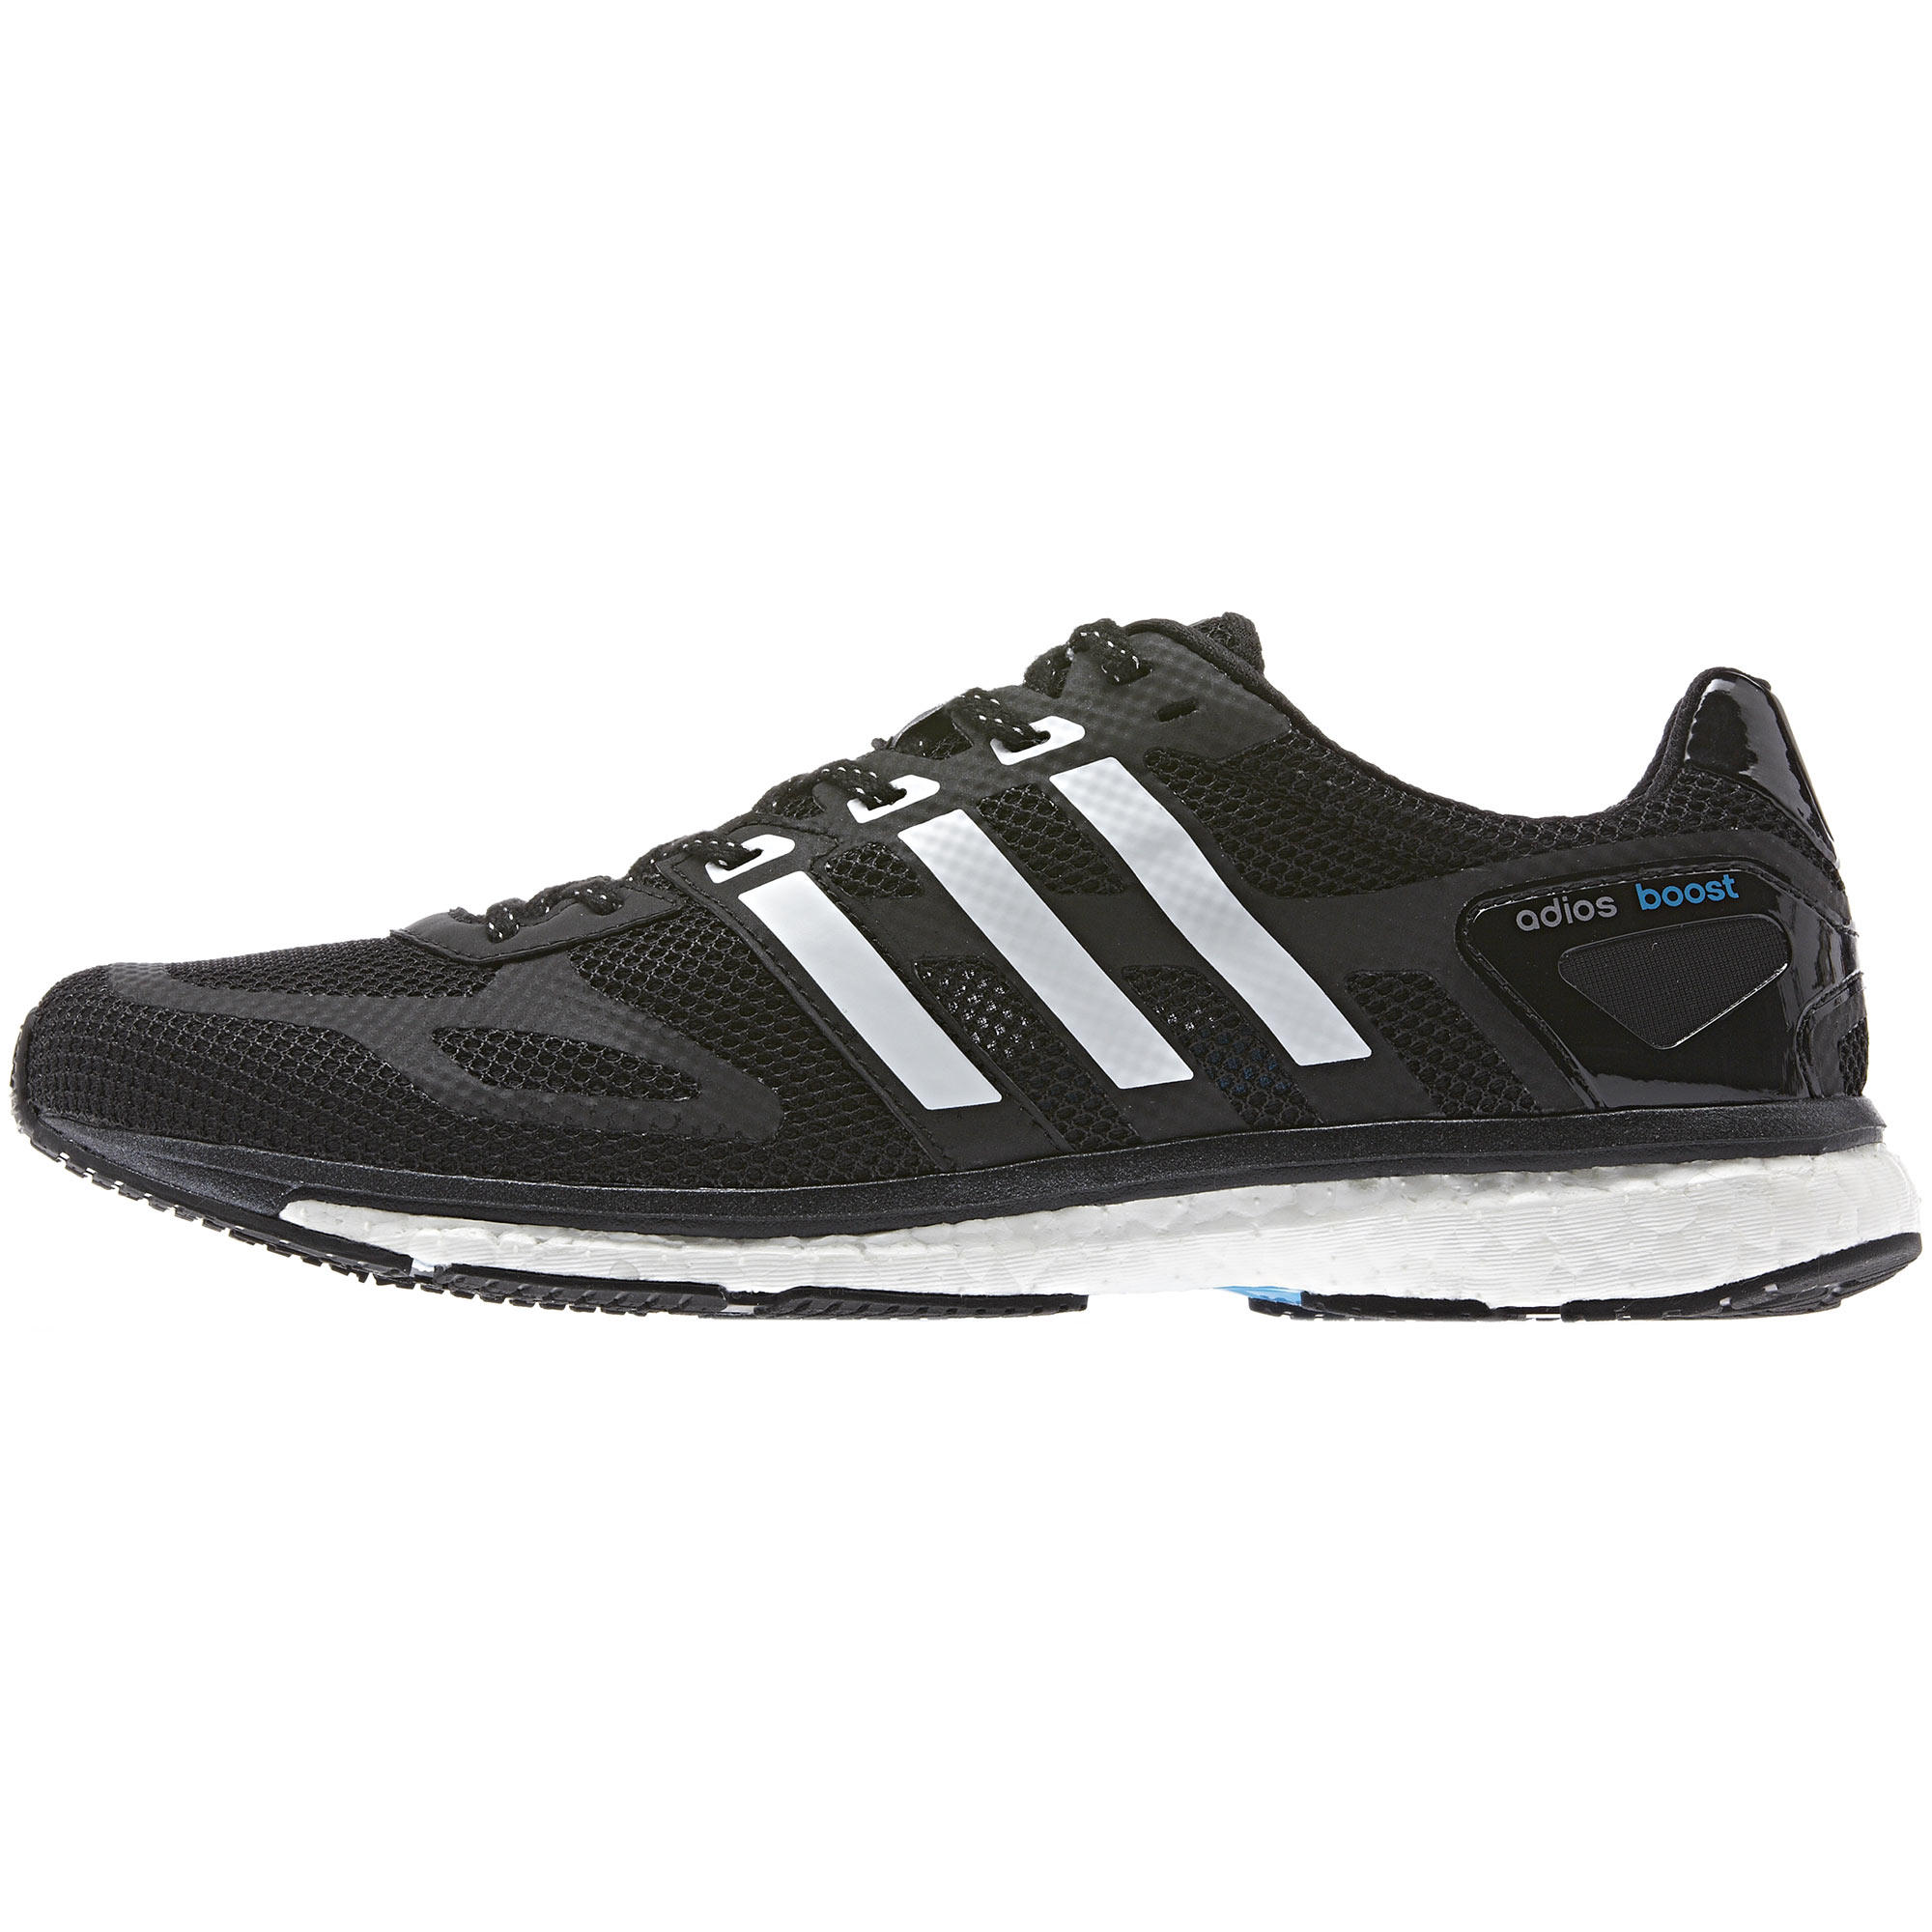 buy popular 4aa13 3f2b2 ADIDAS ADIZERO ADIOS BOOST